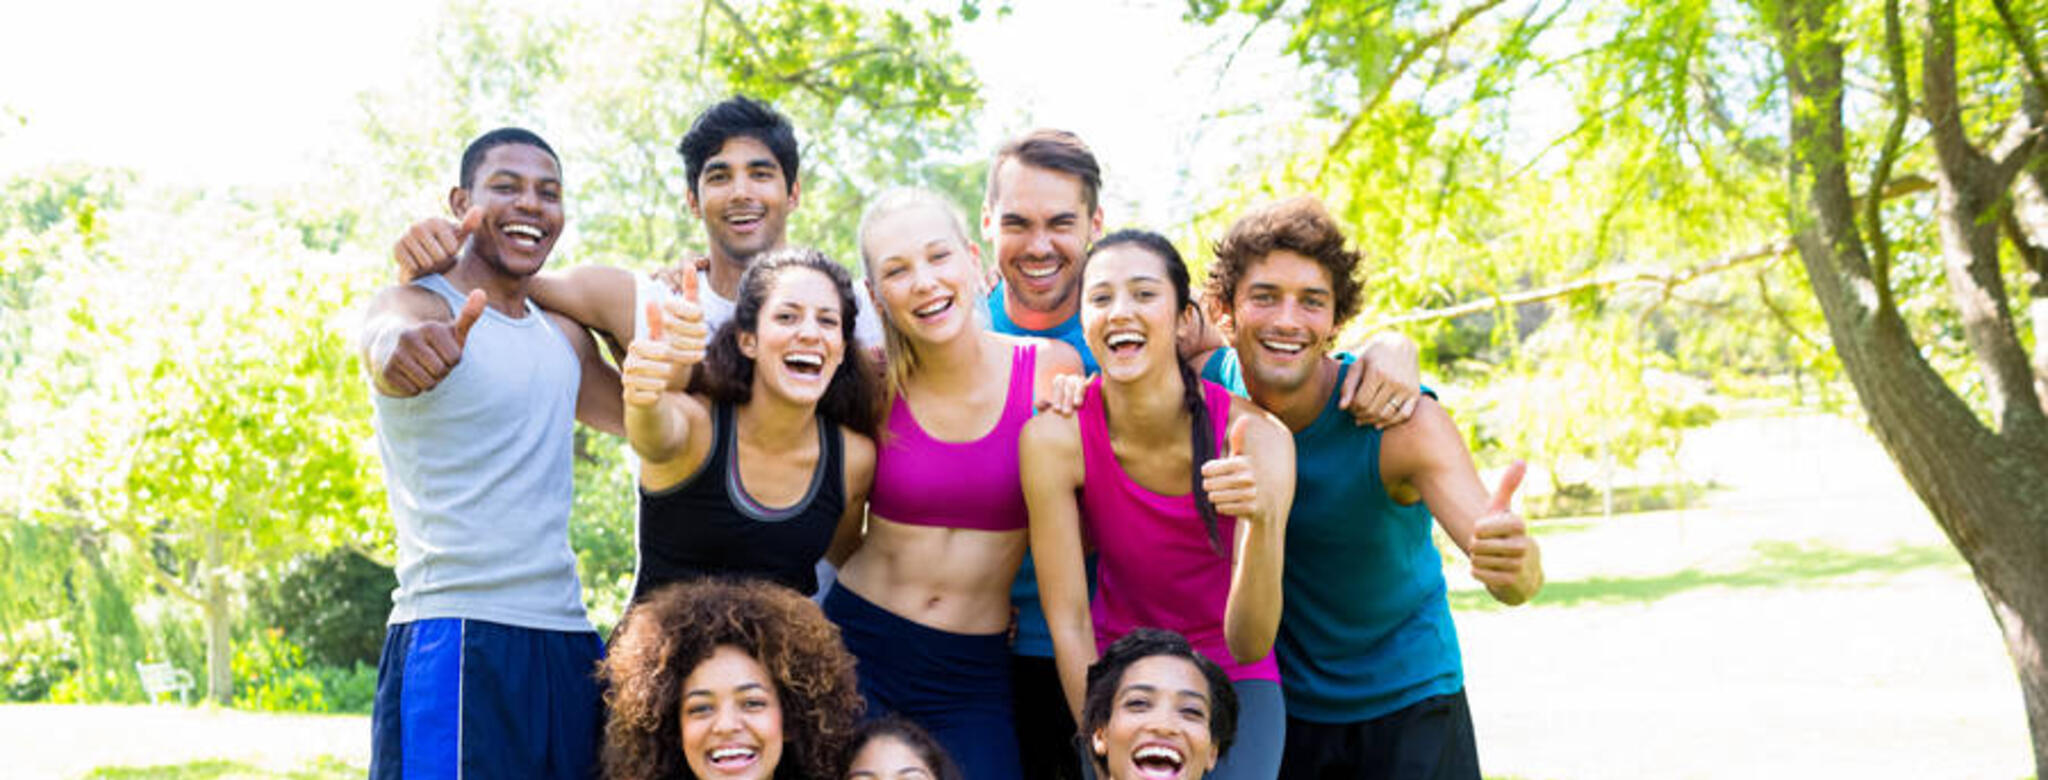 A group of fitness students